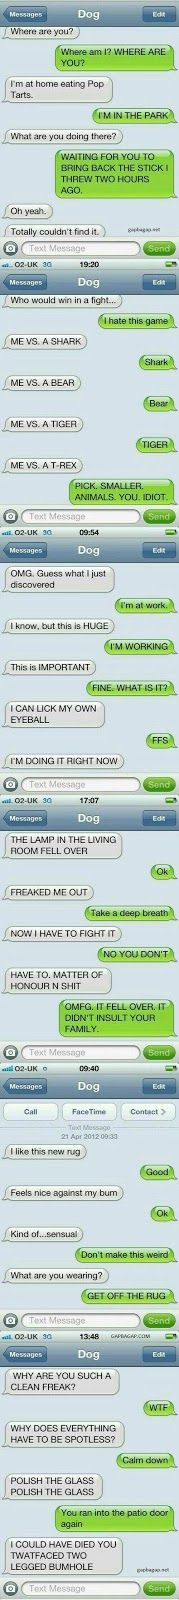 5+ Funny Text Messages ft. Funny Dogs